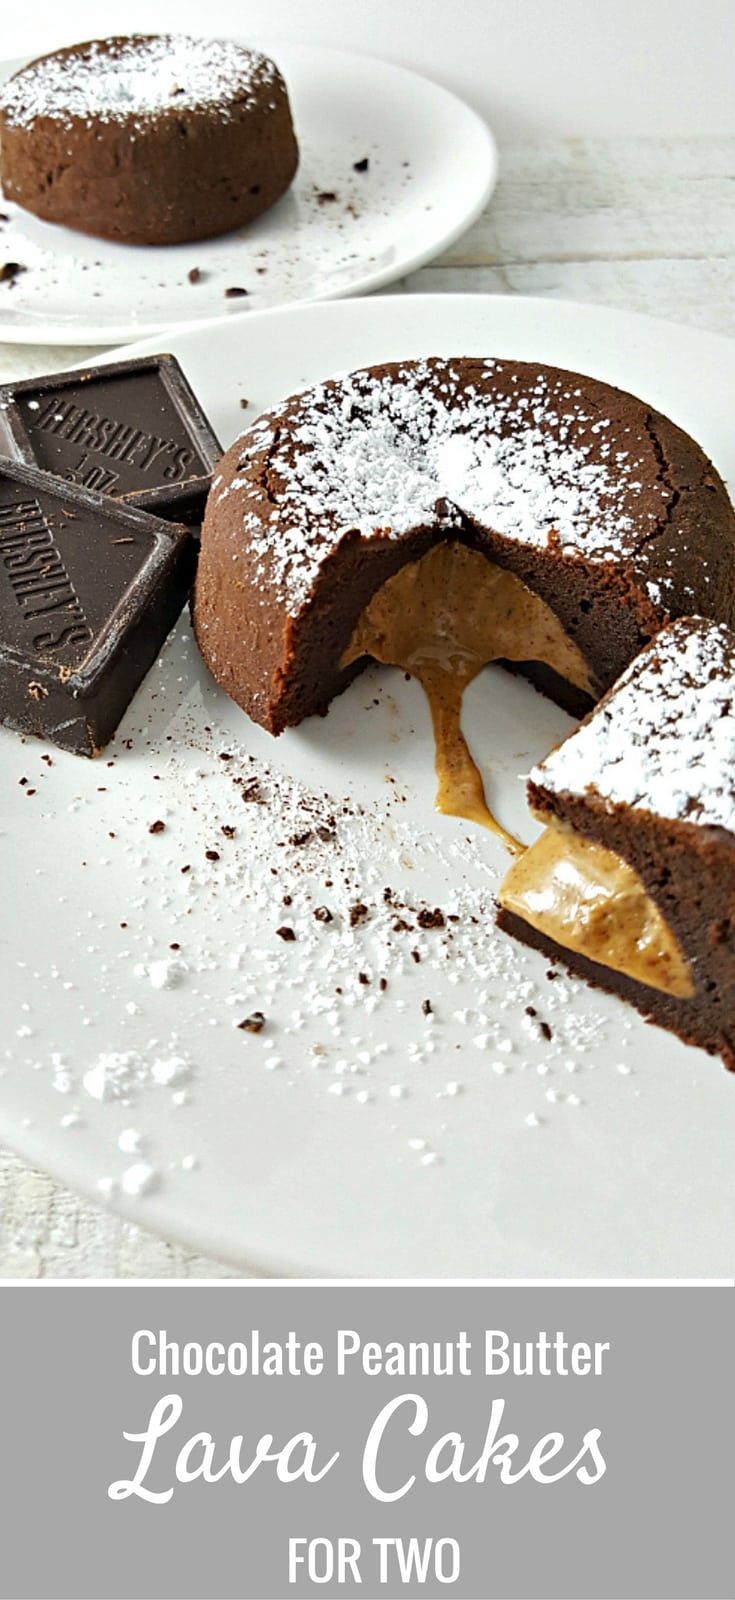 Chocolate Peanut Butter Lava Cakes Recipe for Two - Chocolate and Peanut Butter are the ultimate power couple and these are an incredibly delicious dessert. Moist chocolate cake is filled with sweetened ooey gooey cinnamon peanut butter. Pour yourself a nice glass of milk to go with it. This recipe is sure to impress your special someone on date night, Valentine's Day, or every day!